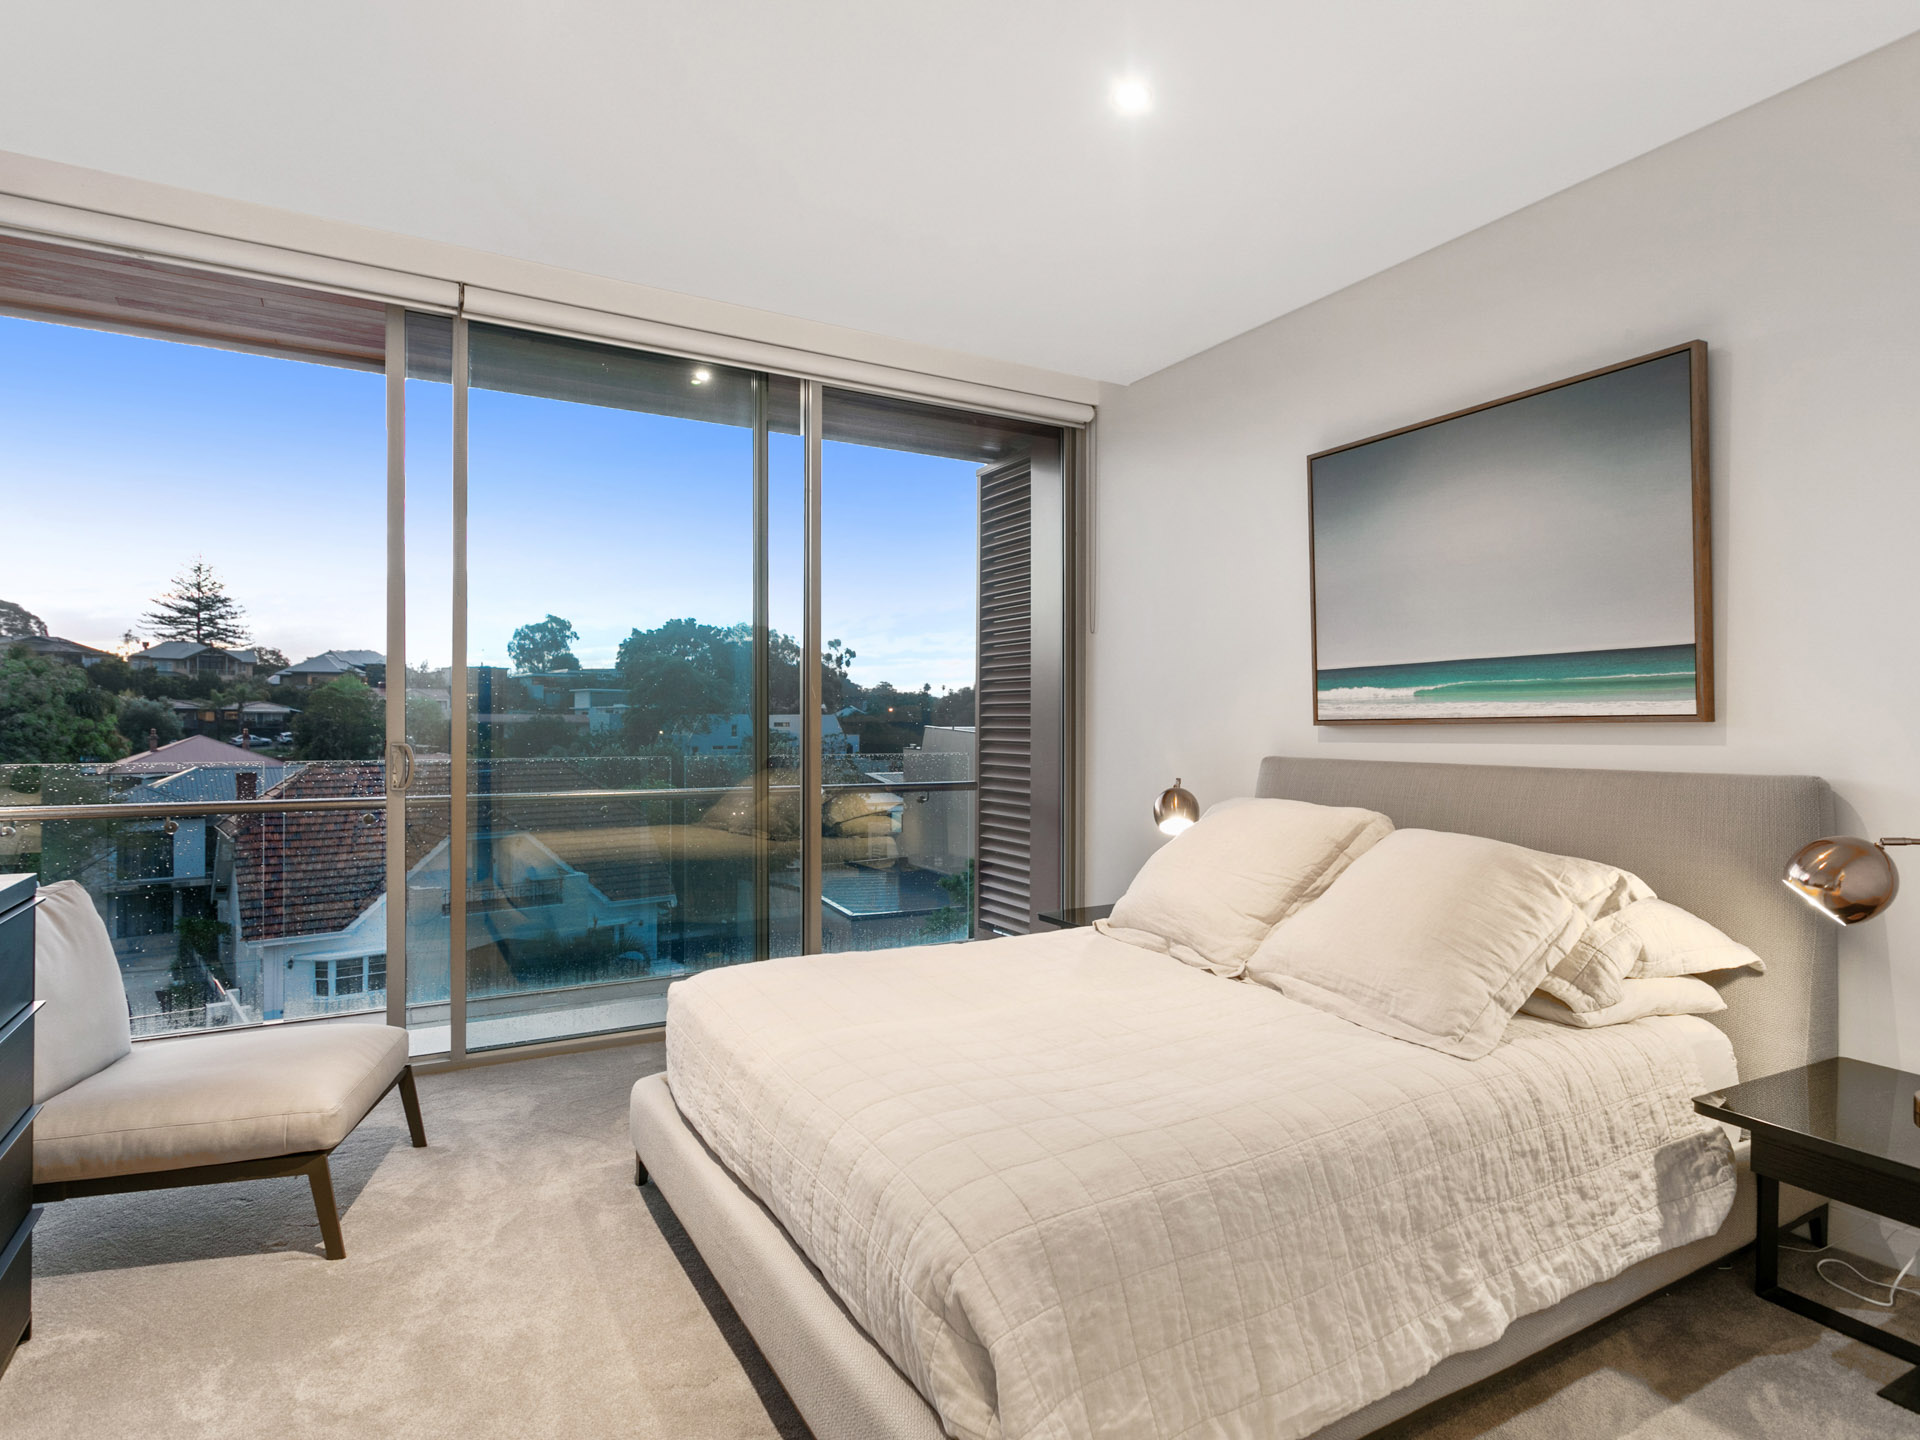 202/30 The Avenue Nedlands - Apartment For Sale - 21281776 - ACTON Dalkeith